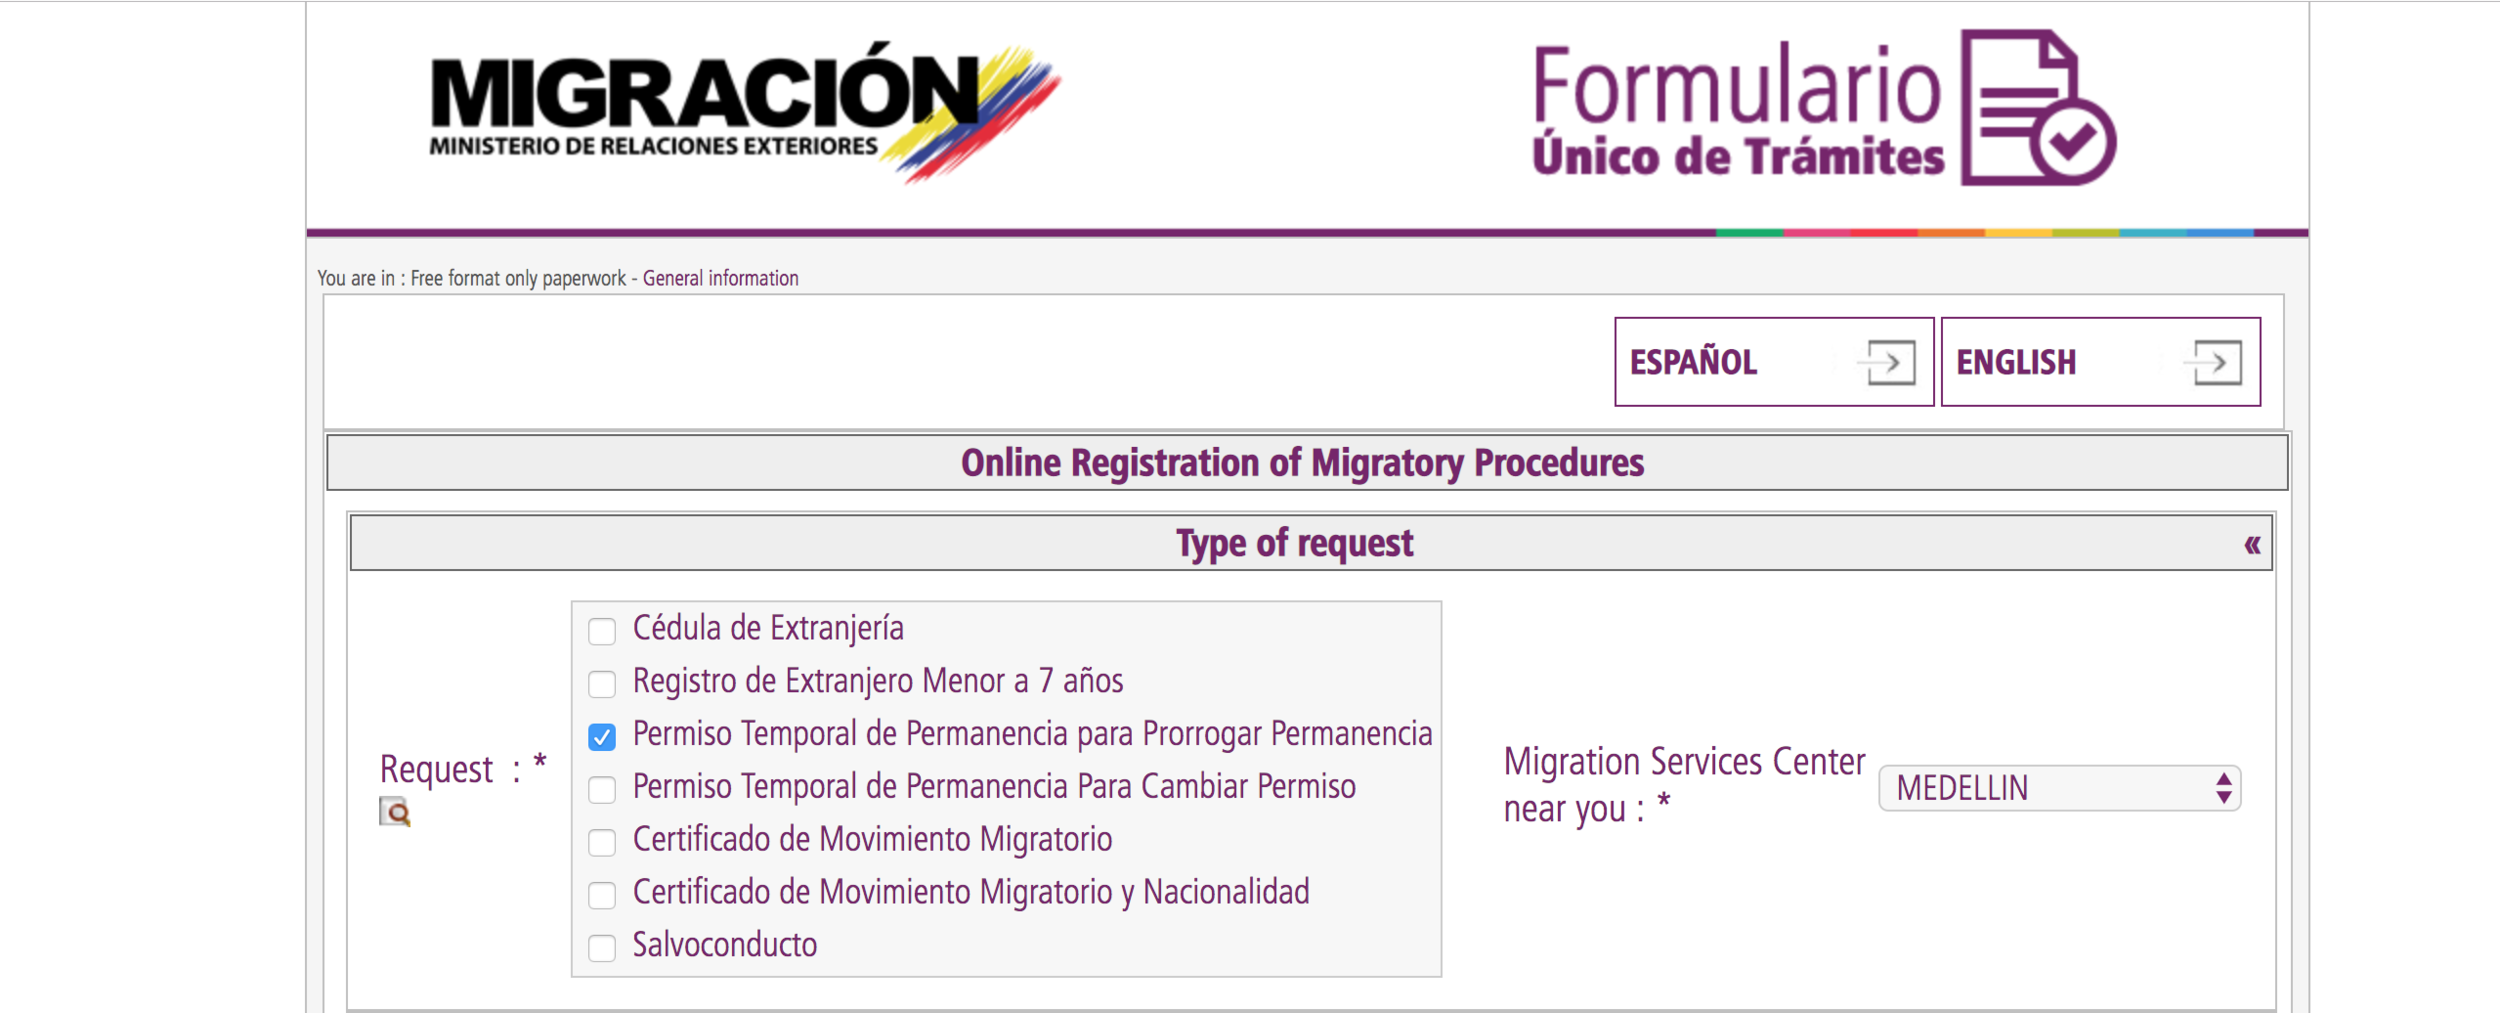 Image courtesy of the migración colombia website